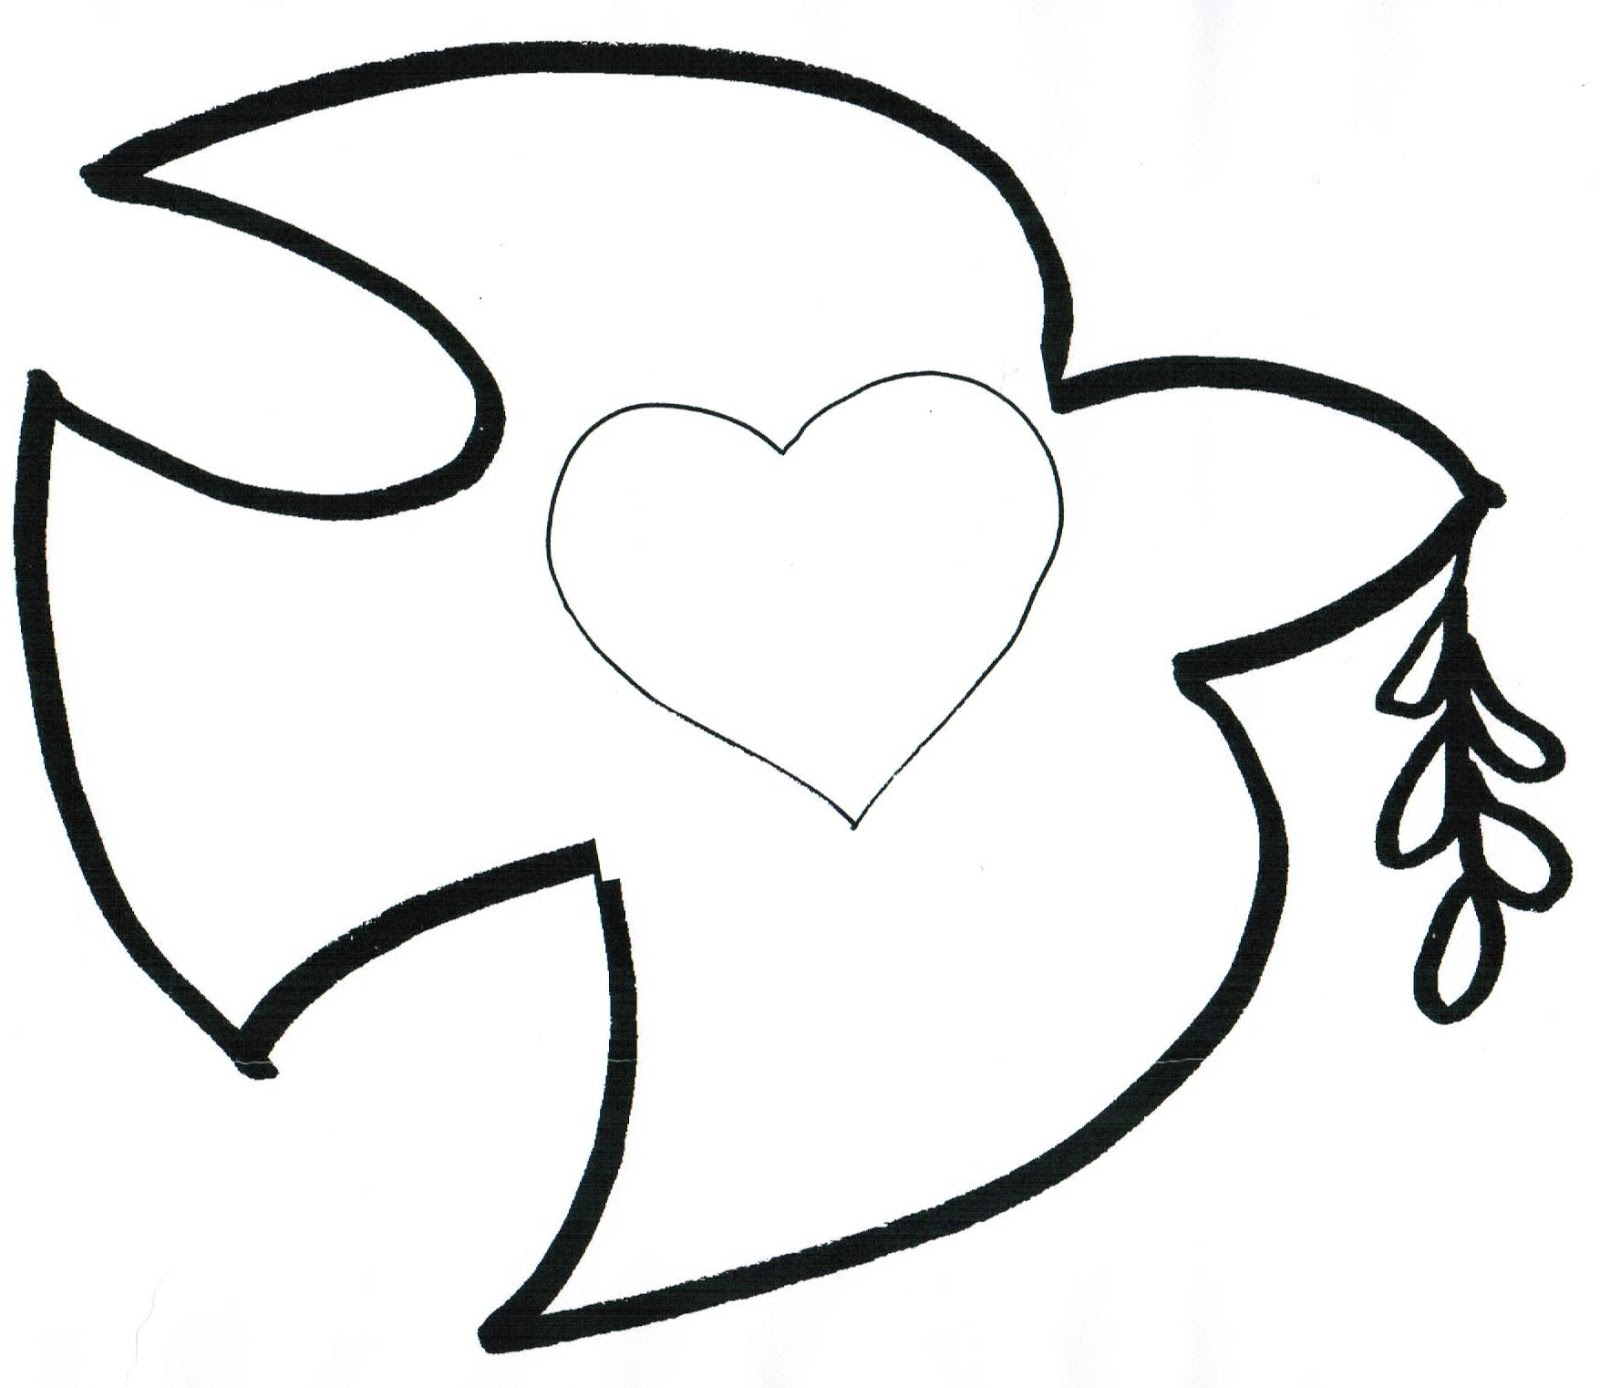 Childrens liturgy sept 11 2016 twenty fourth sunday ordinary time c use this dove with heart graphic for the medium sized banner symbol and the large offertory coloring pages biocorpaavc